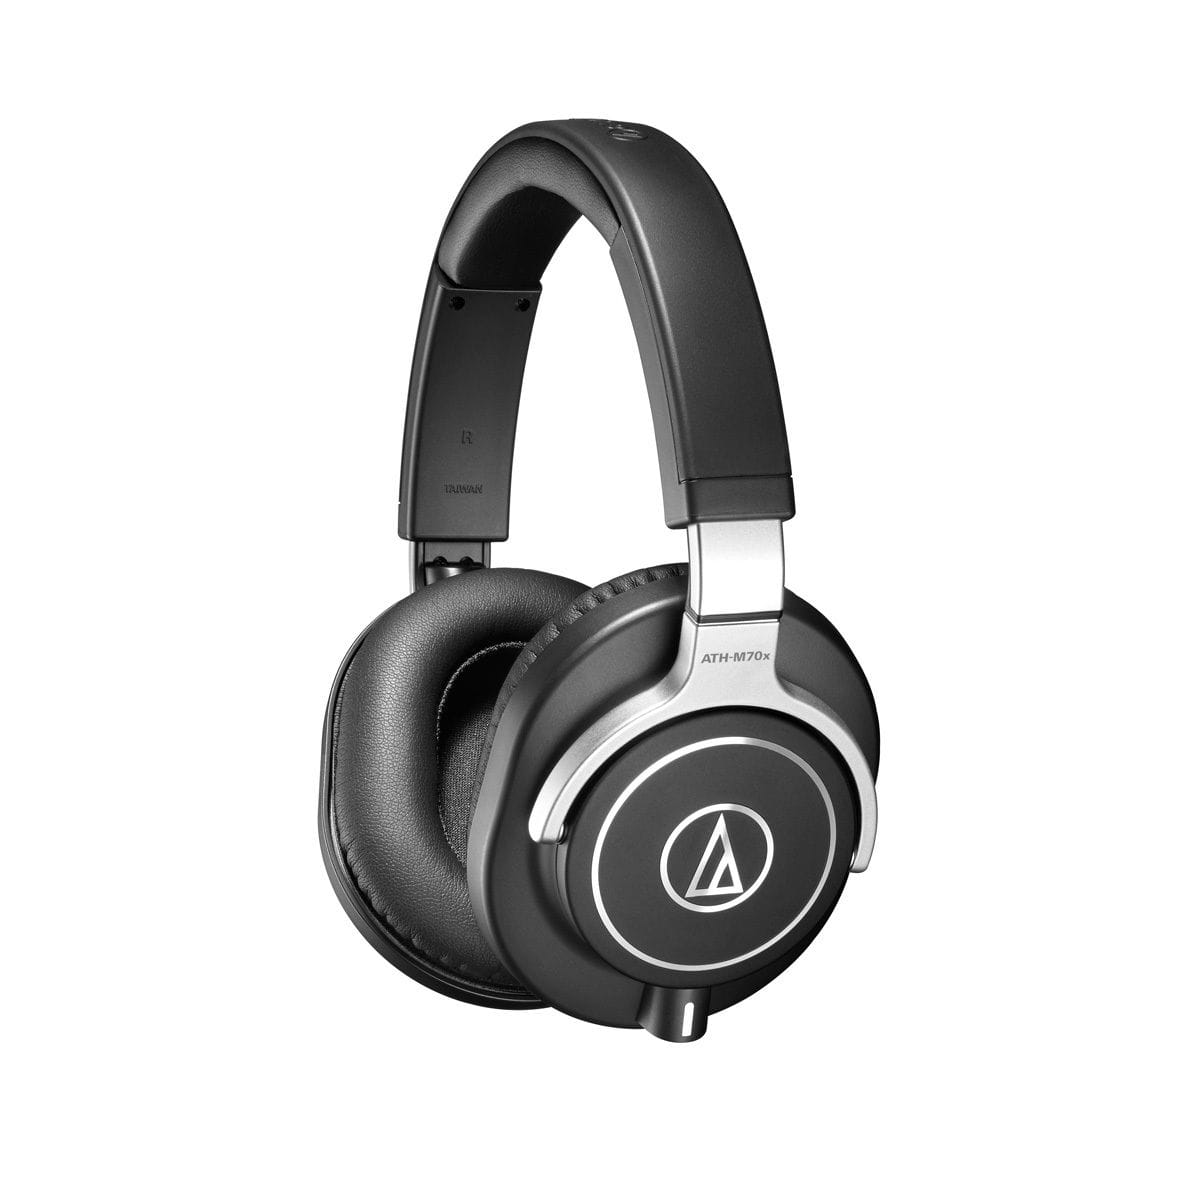 Audio Technica ATH-M70x Professional Studio Monitor Headphones